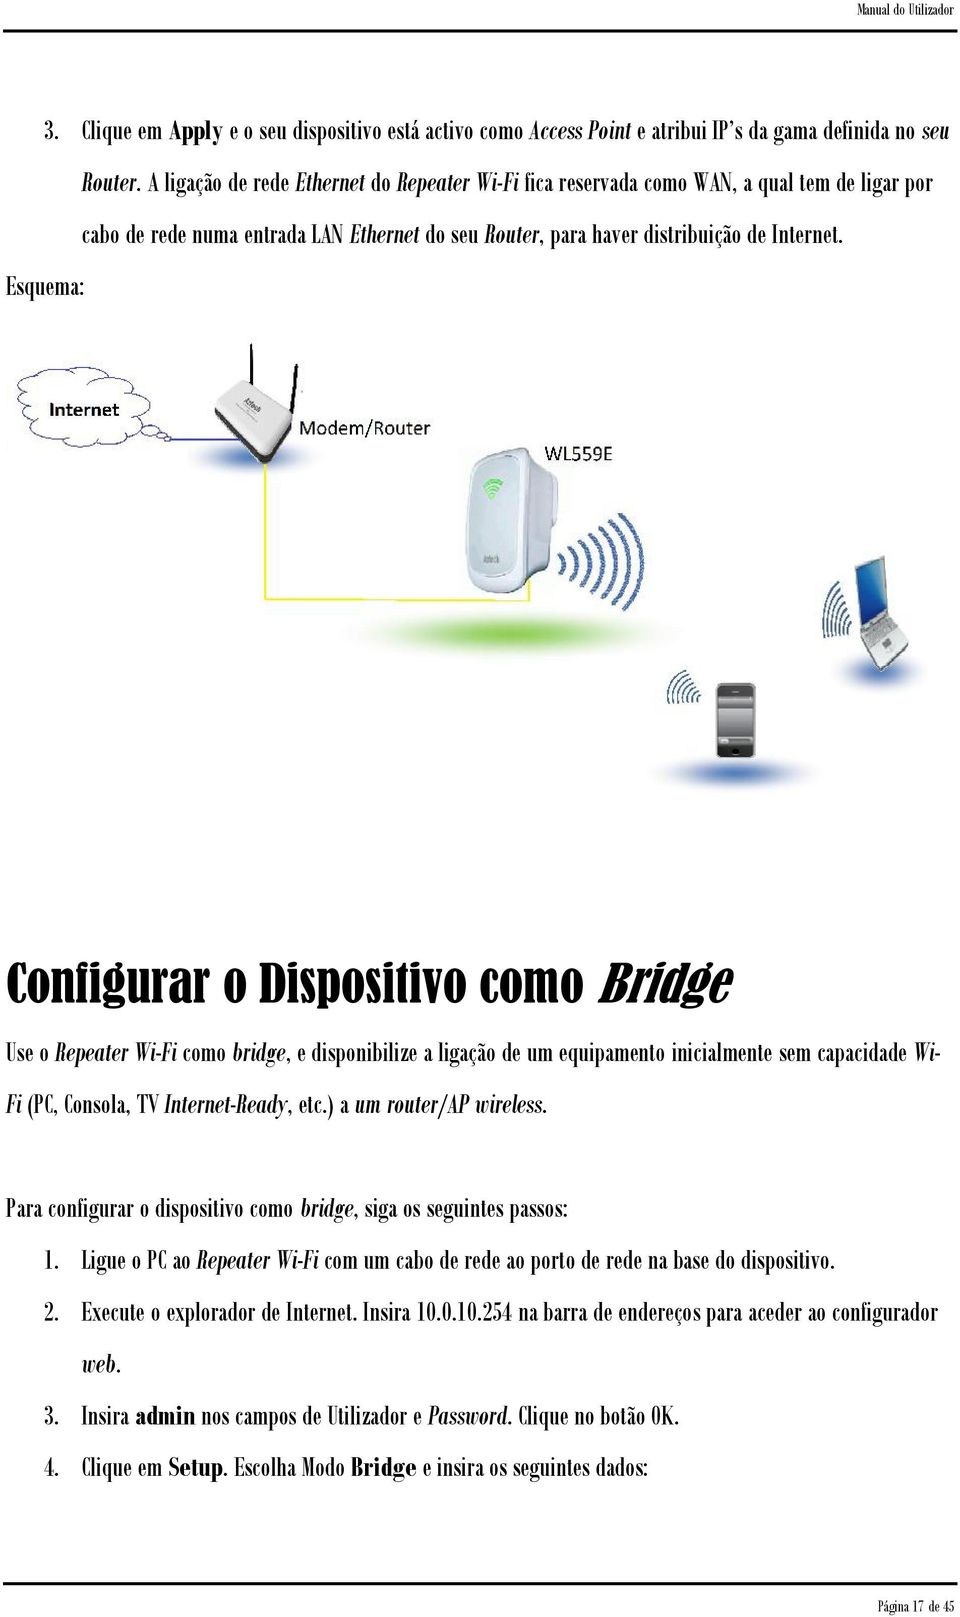 Esquema: Configurar o Dispositivo como Bridge Use o Repeater Wi-Fi como bridge, e disponibilize a ligação de um equipamento inicialmente sem capacidade WiFi (PC, Consola, TV Internet-Ready, etc.